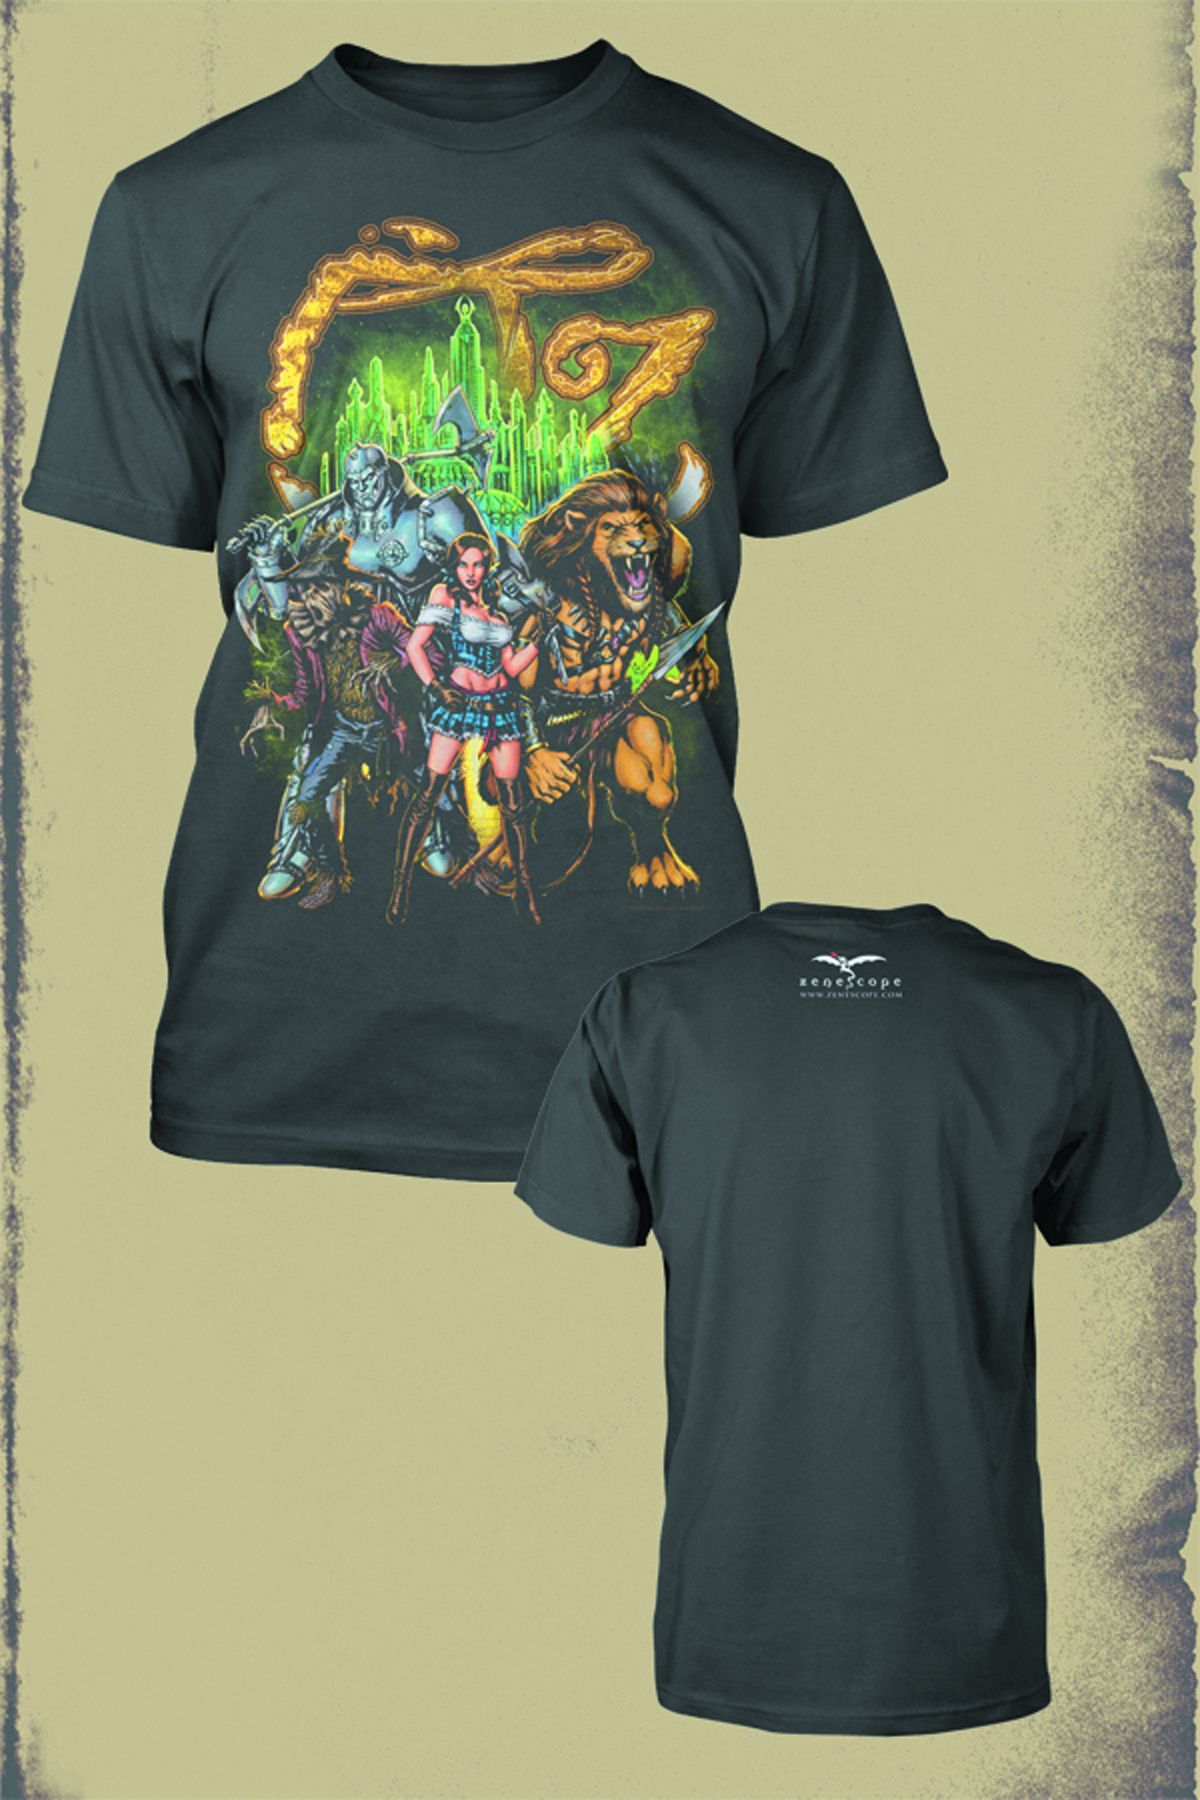 ZENESCOPE OZ EMERALD CITY PX CHARCOAL T/S LG